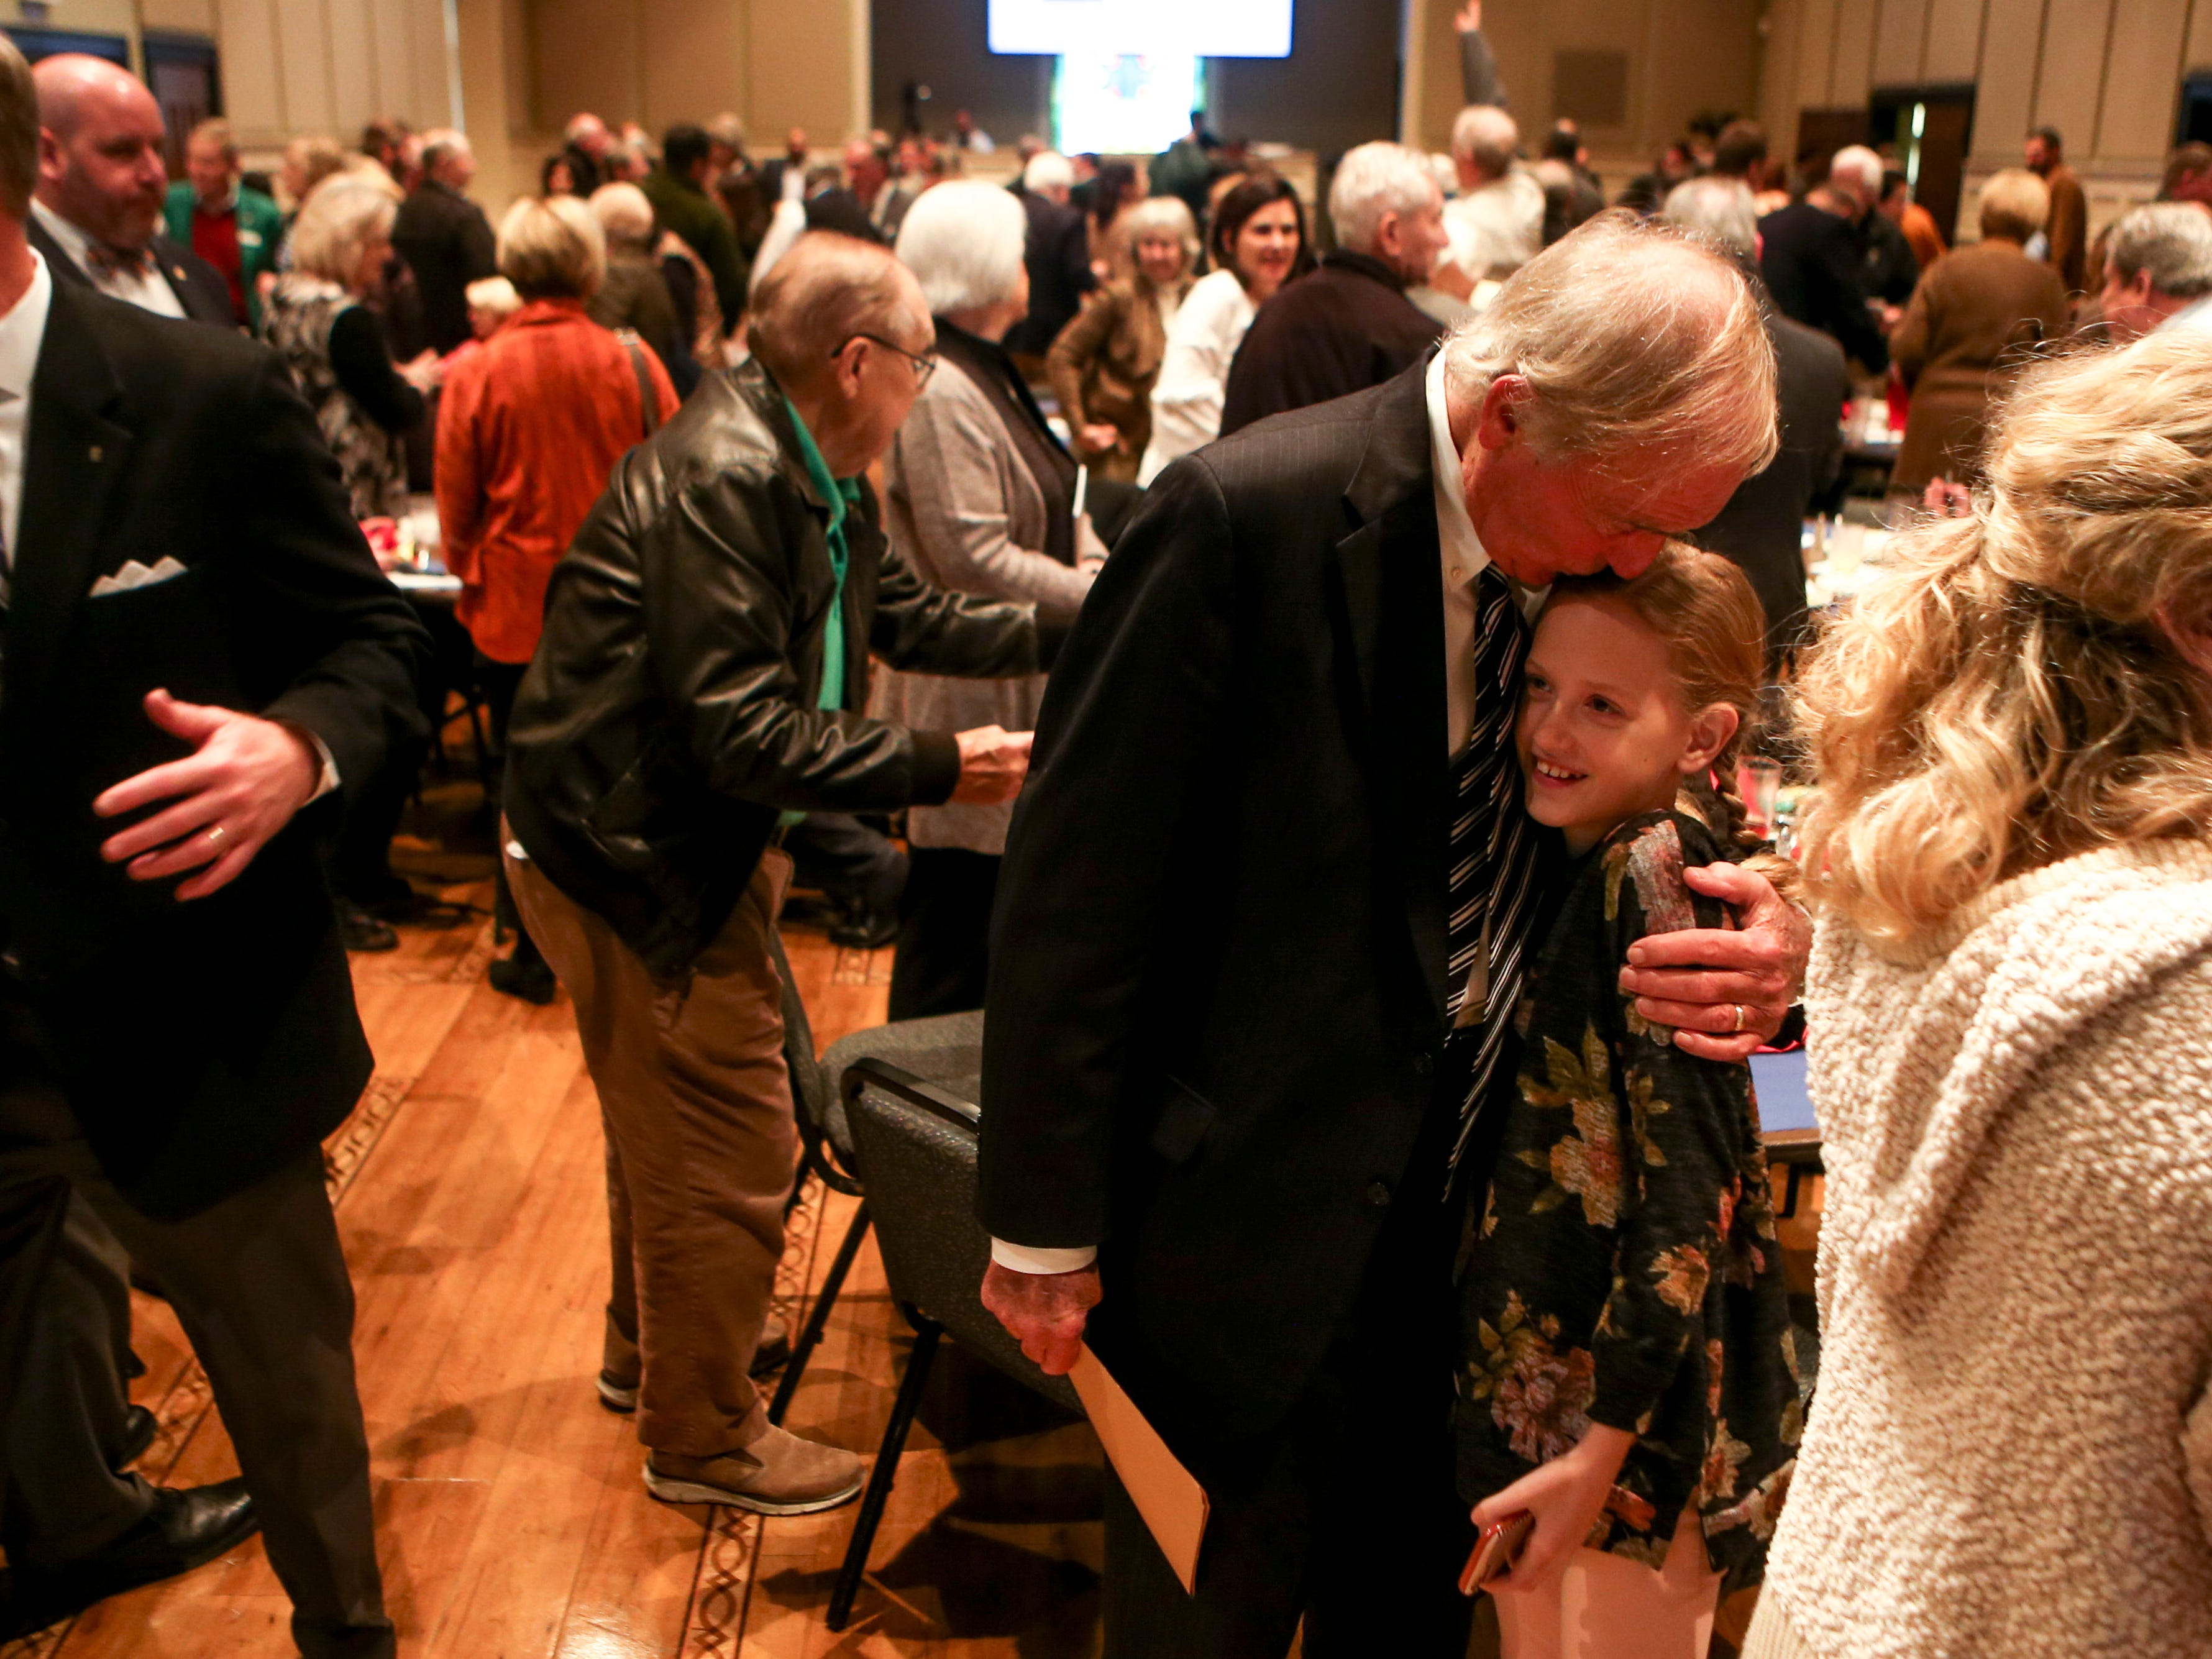 Jackson City Mayor Jerry Gist hugs and kisses his granddaughter Elizabeth Jones, 9, after the monthly First Friday Forum at First United Methodist Church in Jackson, Tenn., on Friday, Jan. 4, 2019.